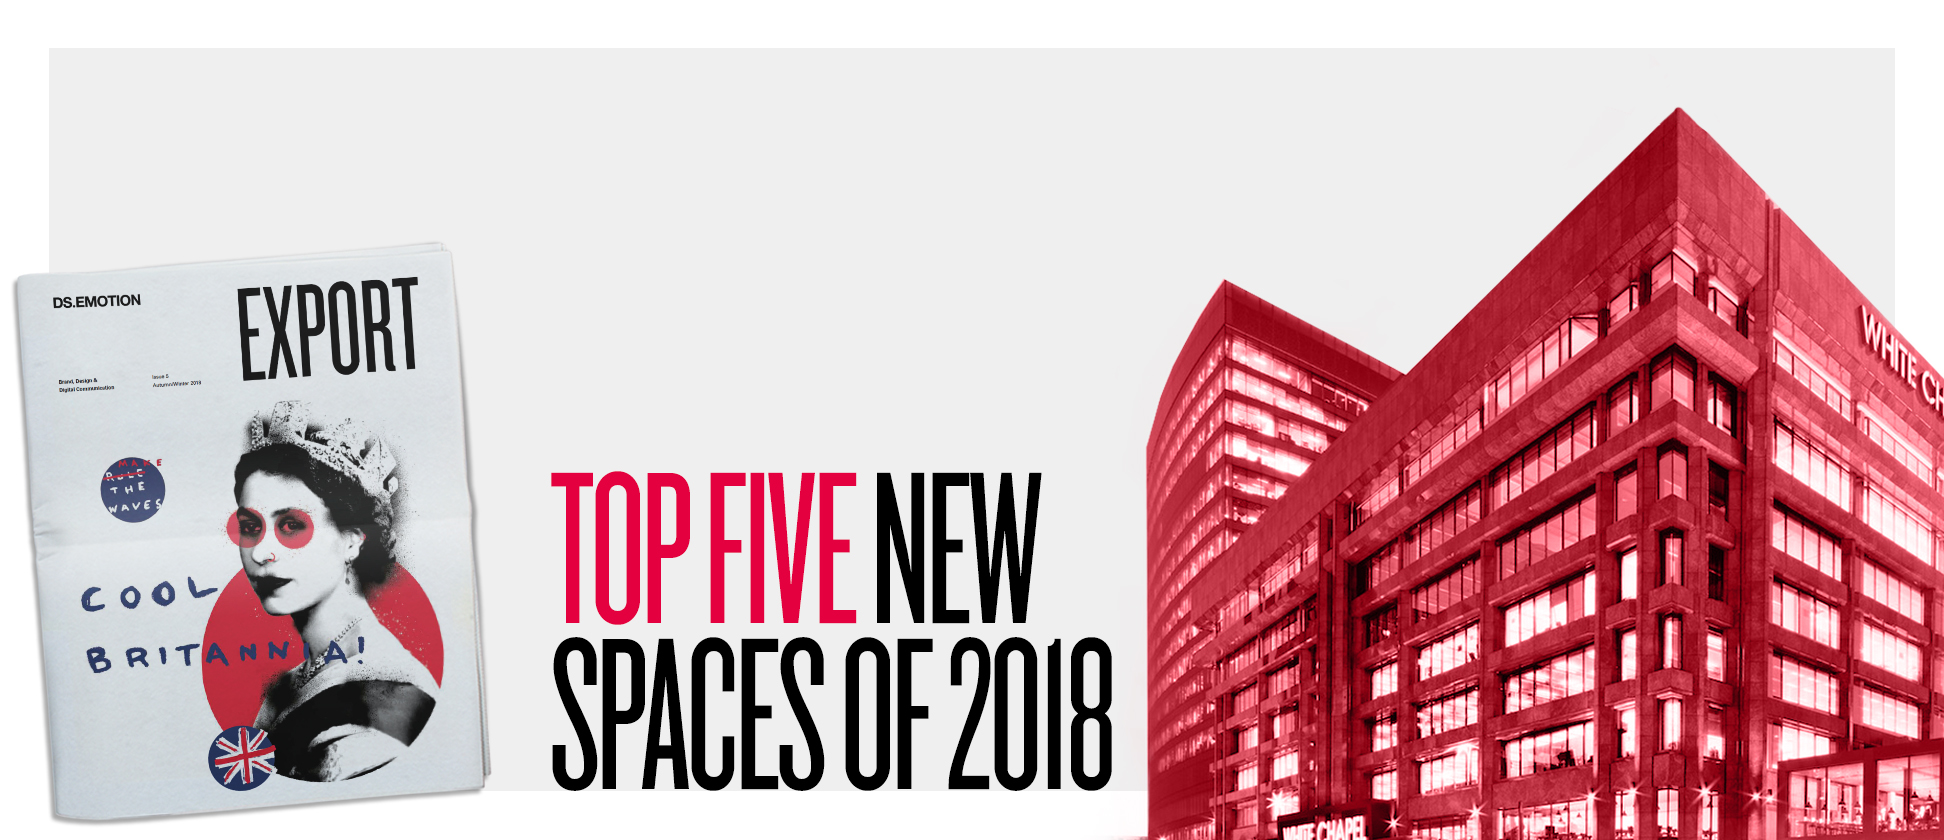 Top five new spaces of 2018